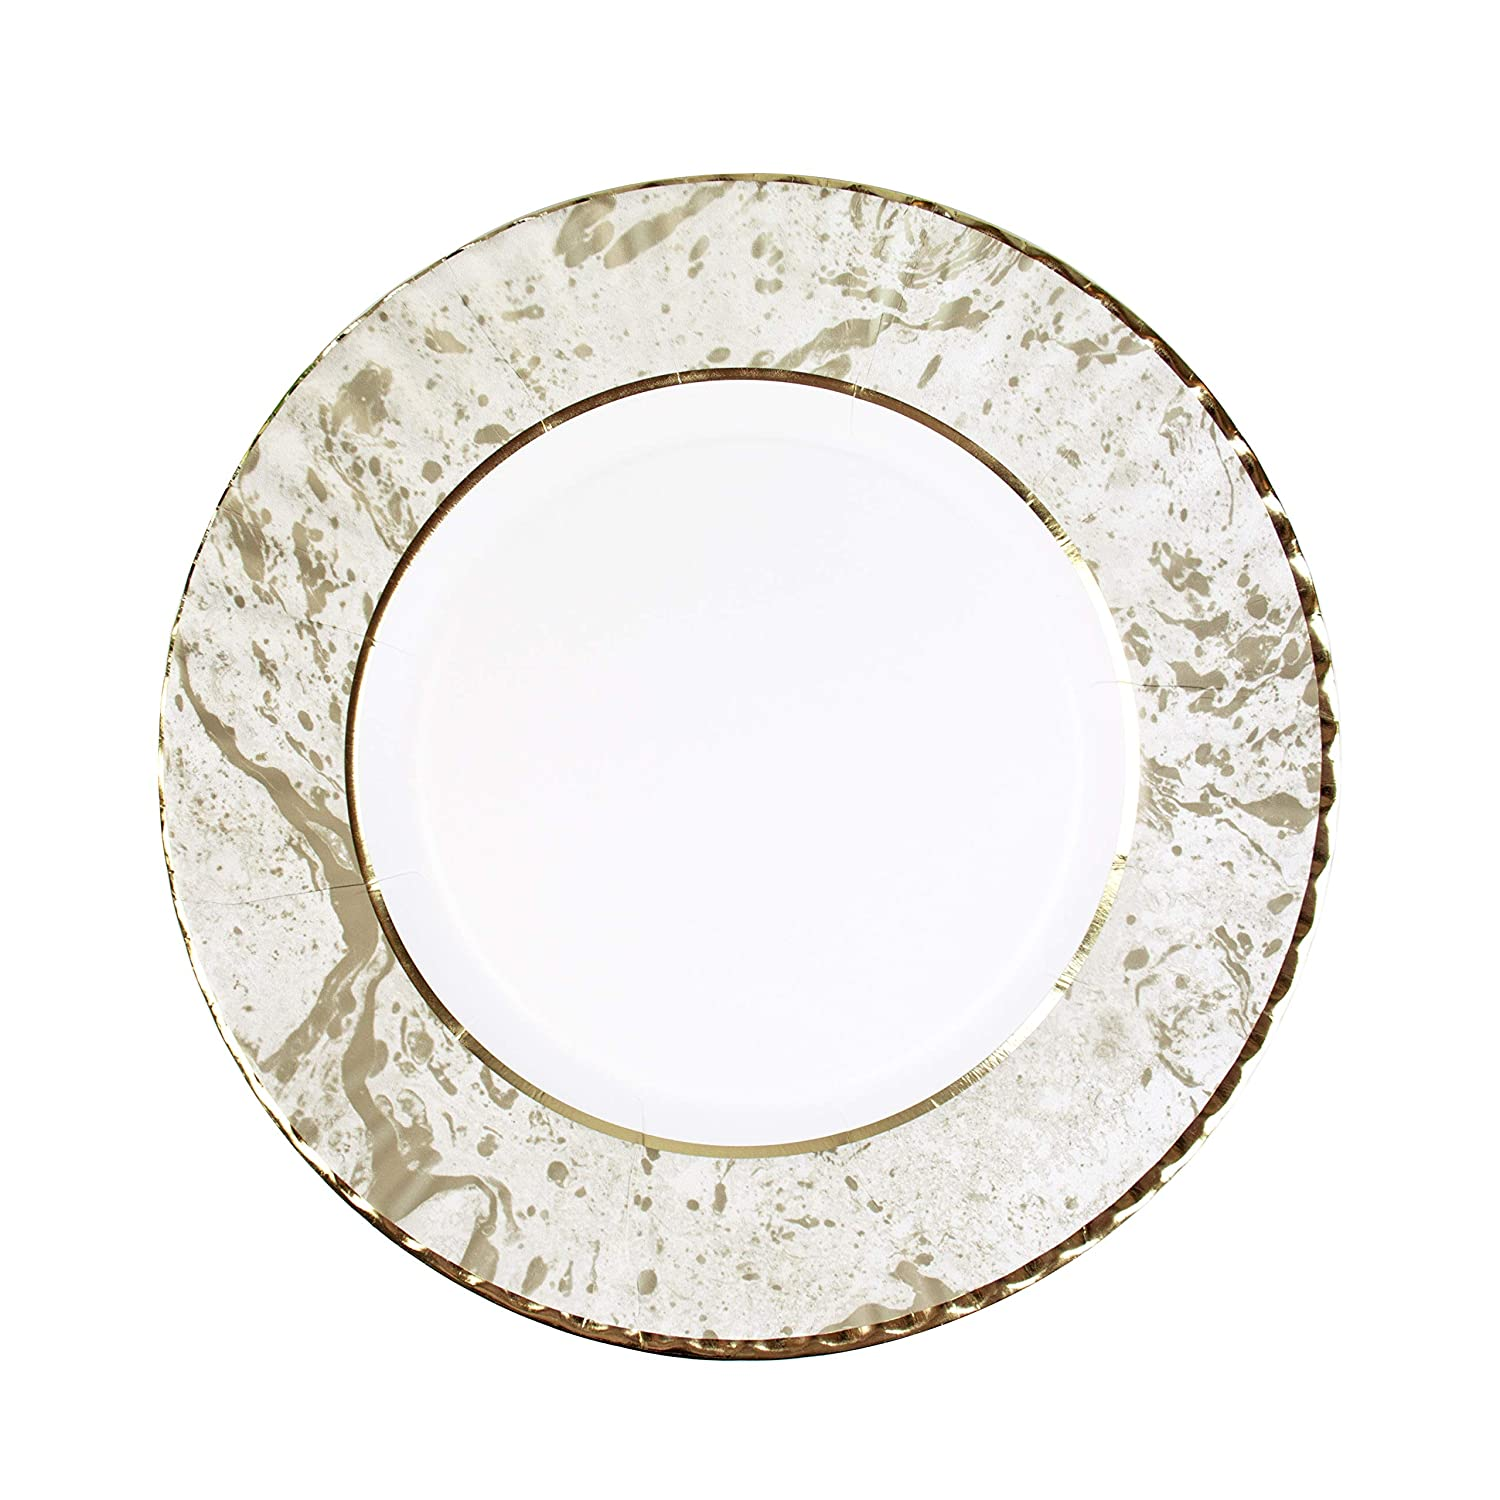 Talking Tables Gold Party Decorations | Gold Plates And Bowls Party Supplies | Gold Bowls | Paper, 12 Count PPG-DCO-BOWL